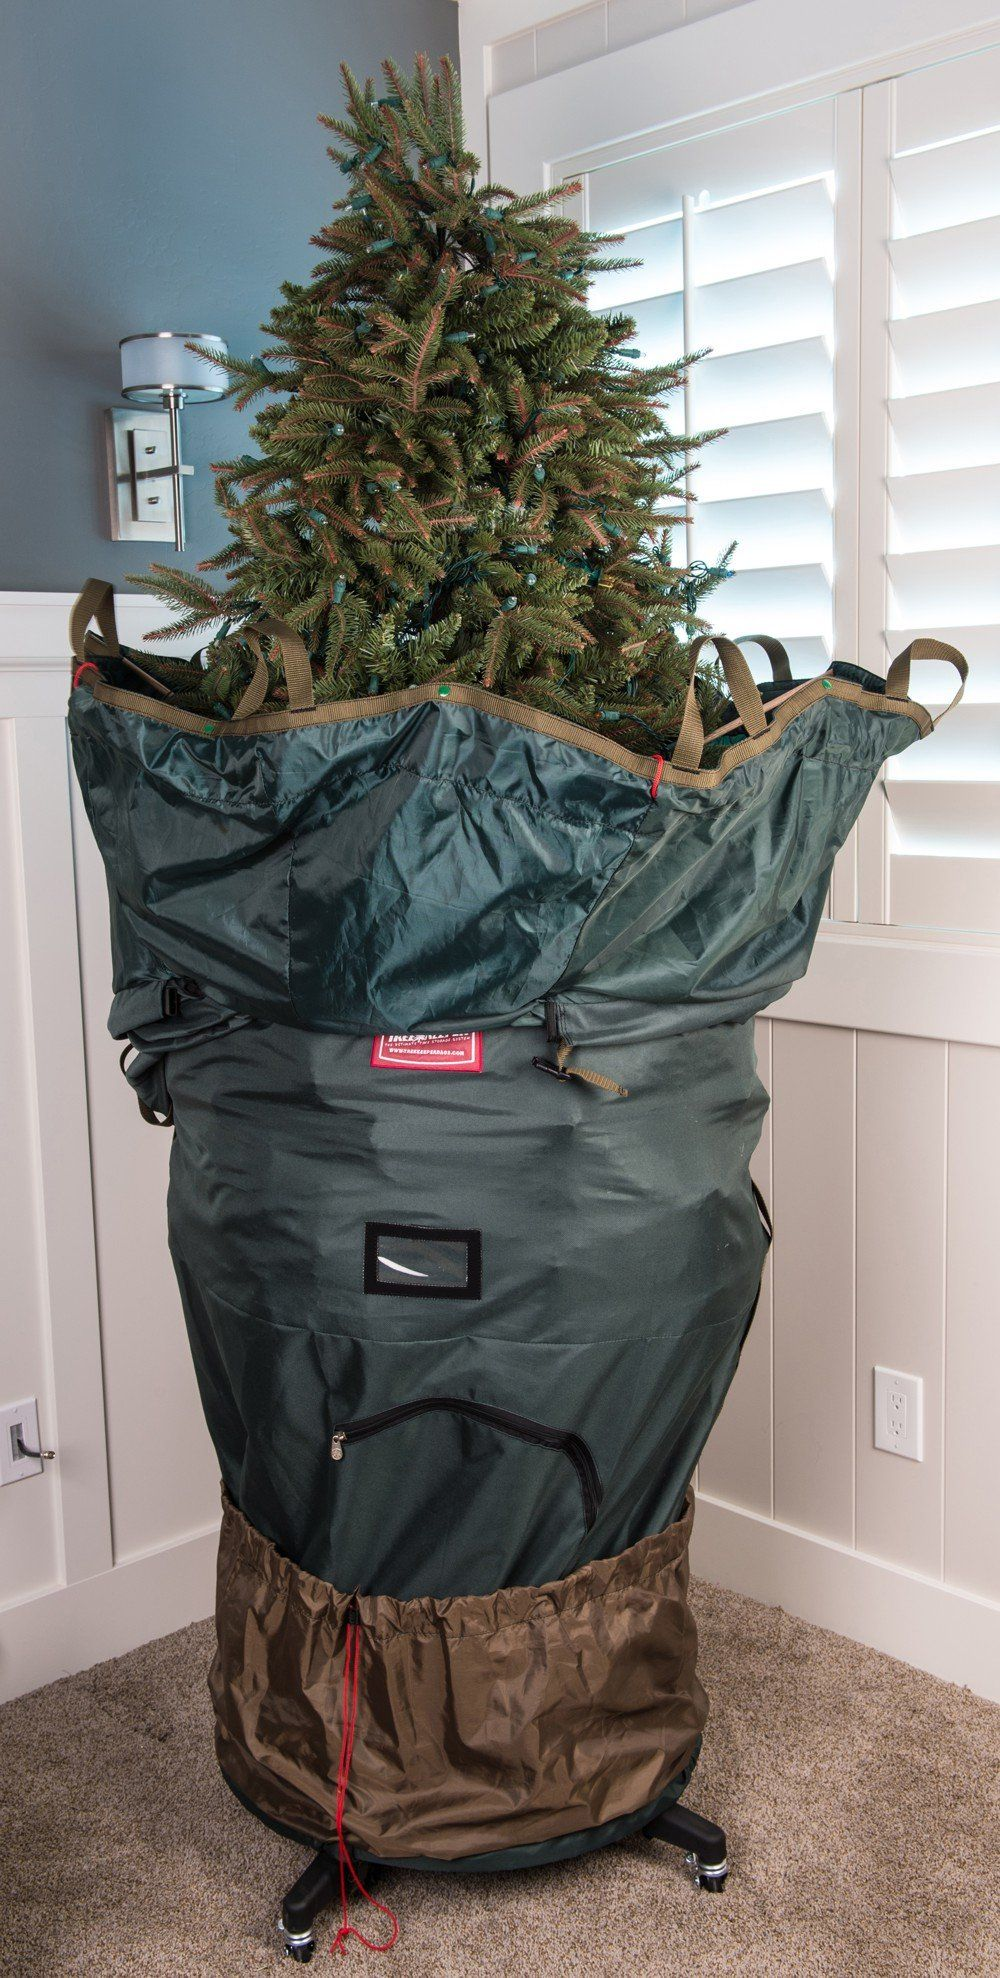 Treekeeper Pro Upright Tree Storage Bag With Stand Fits 7